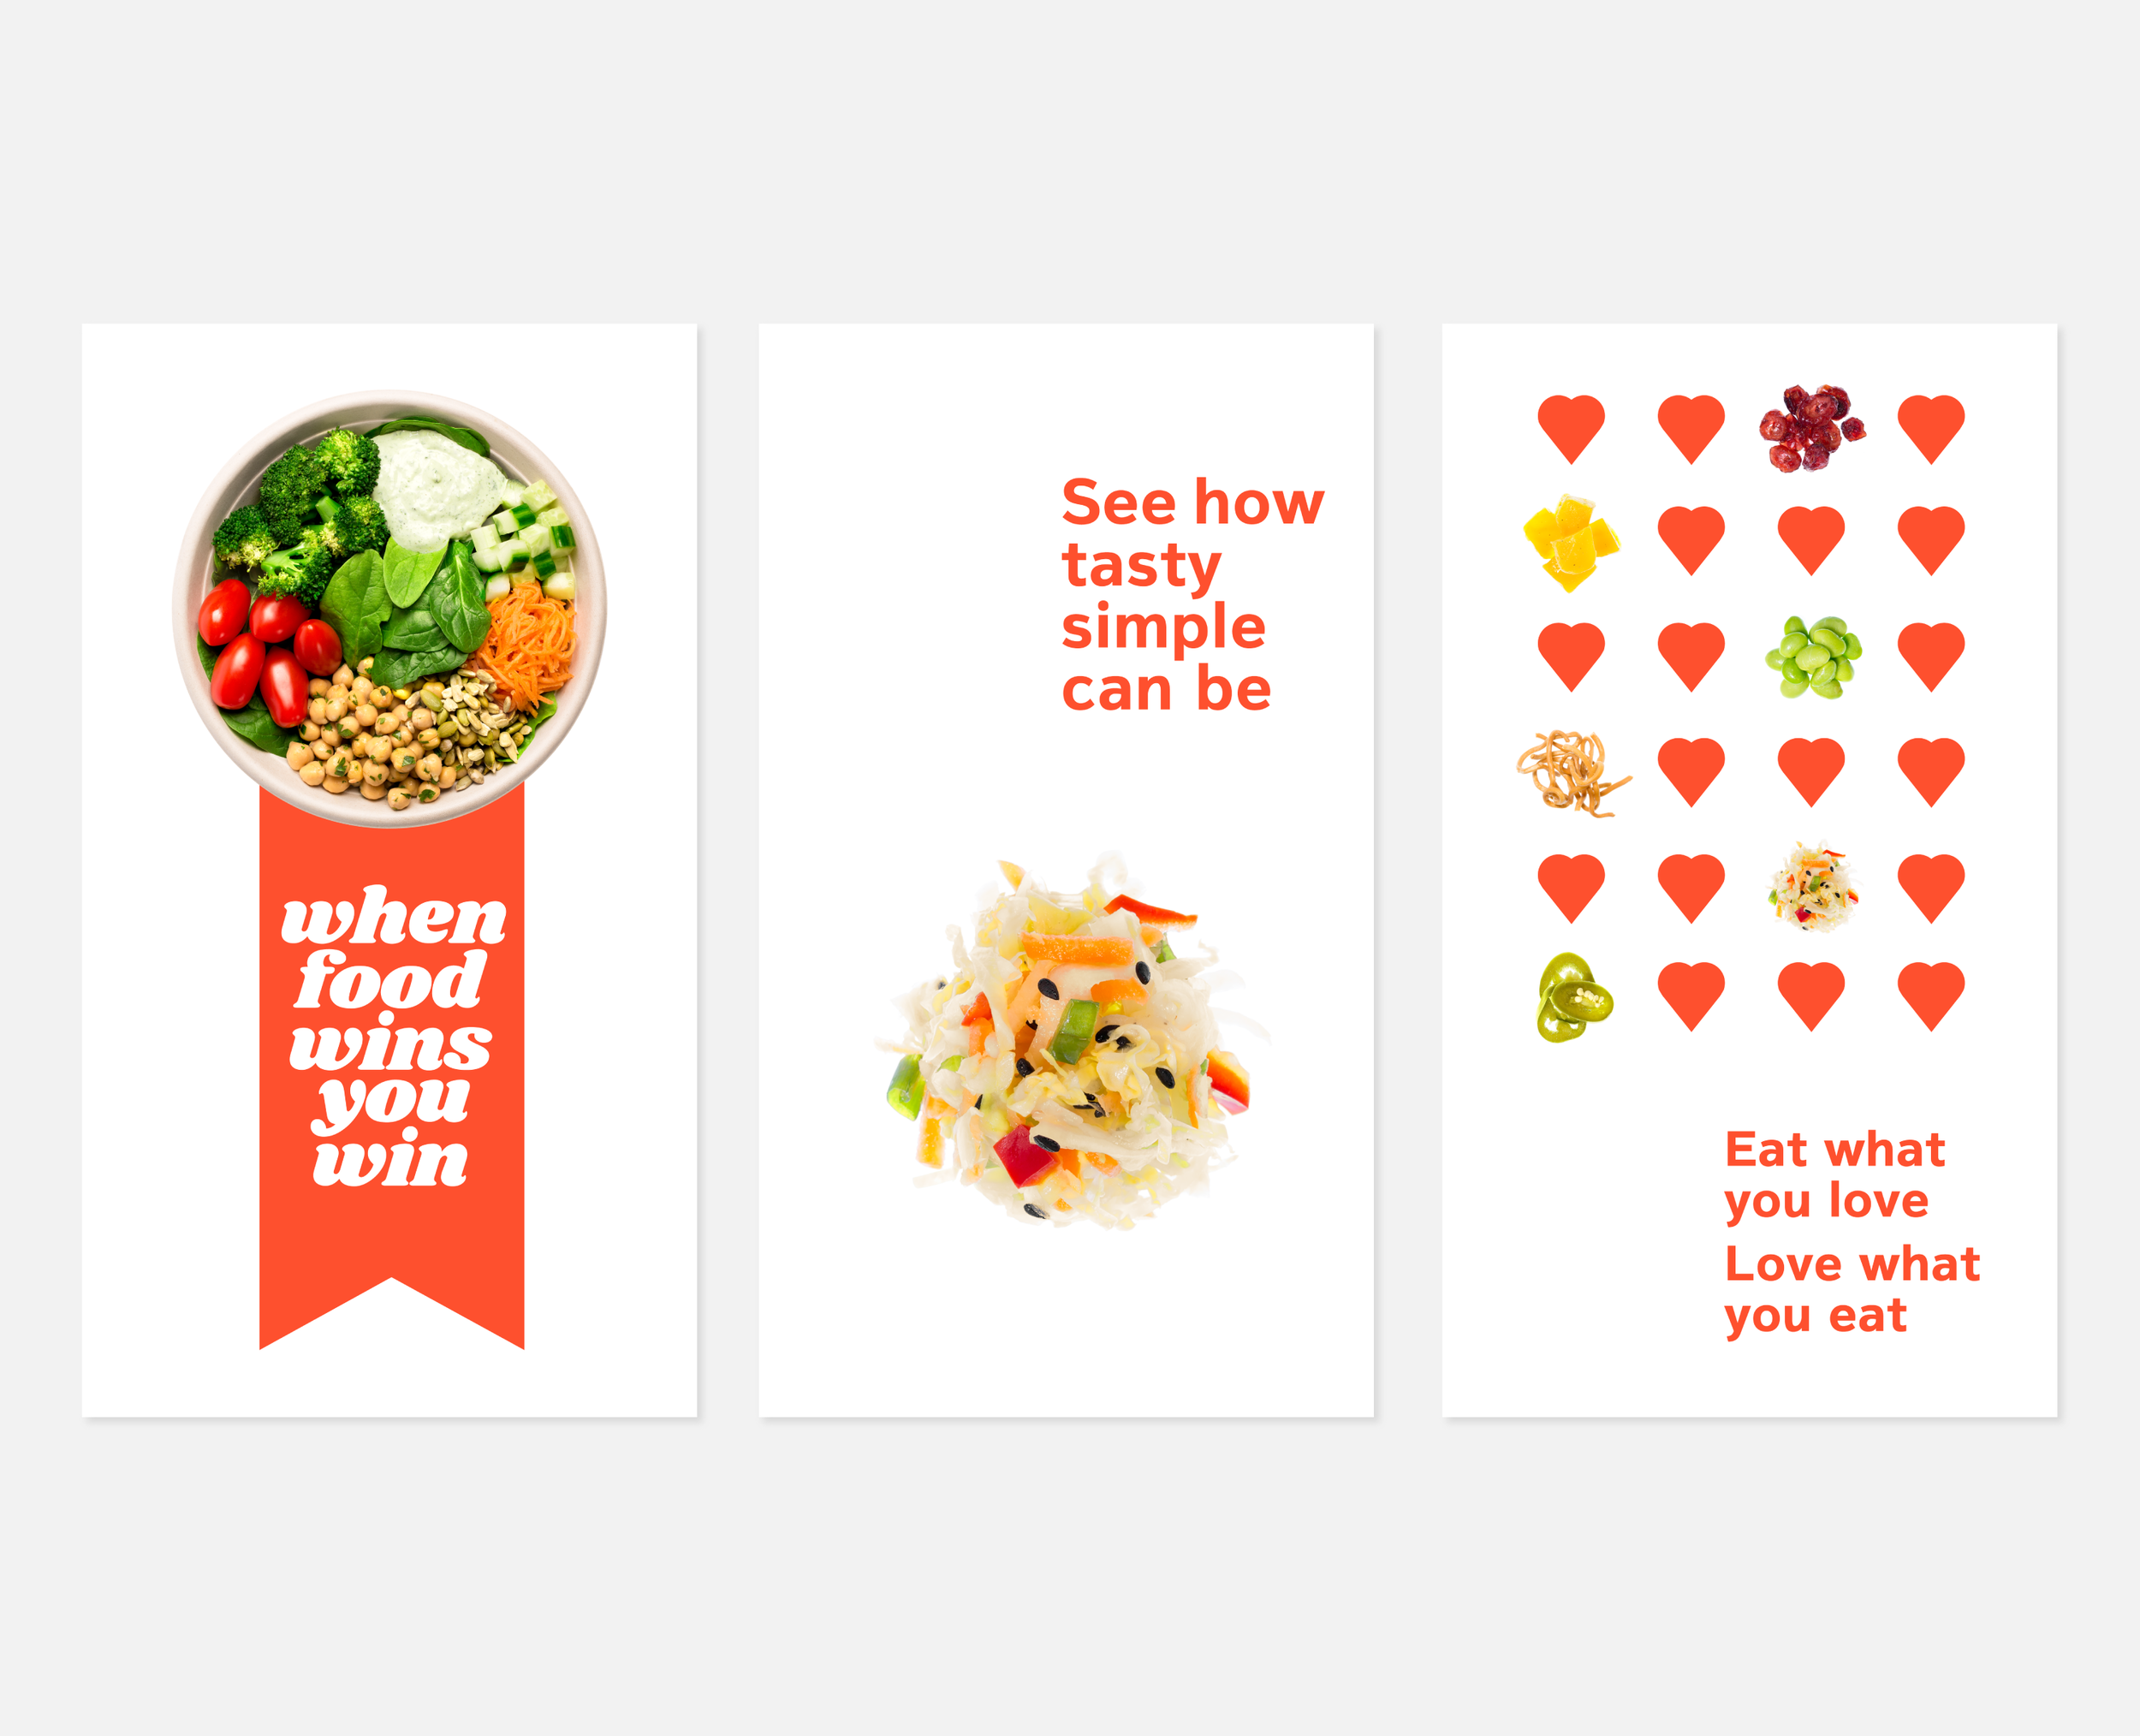 brand_boards_campaign_02@2x.png